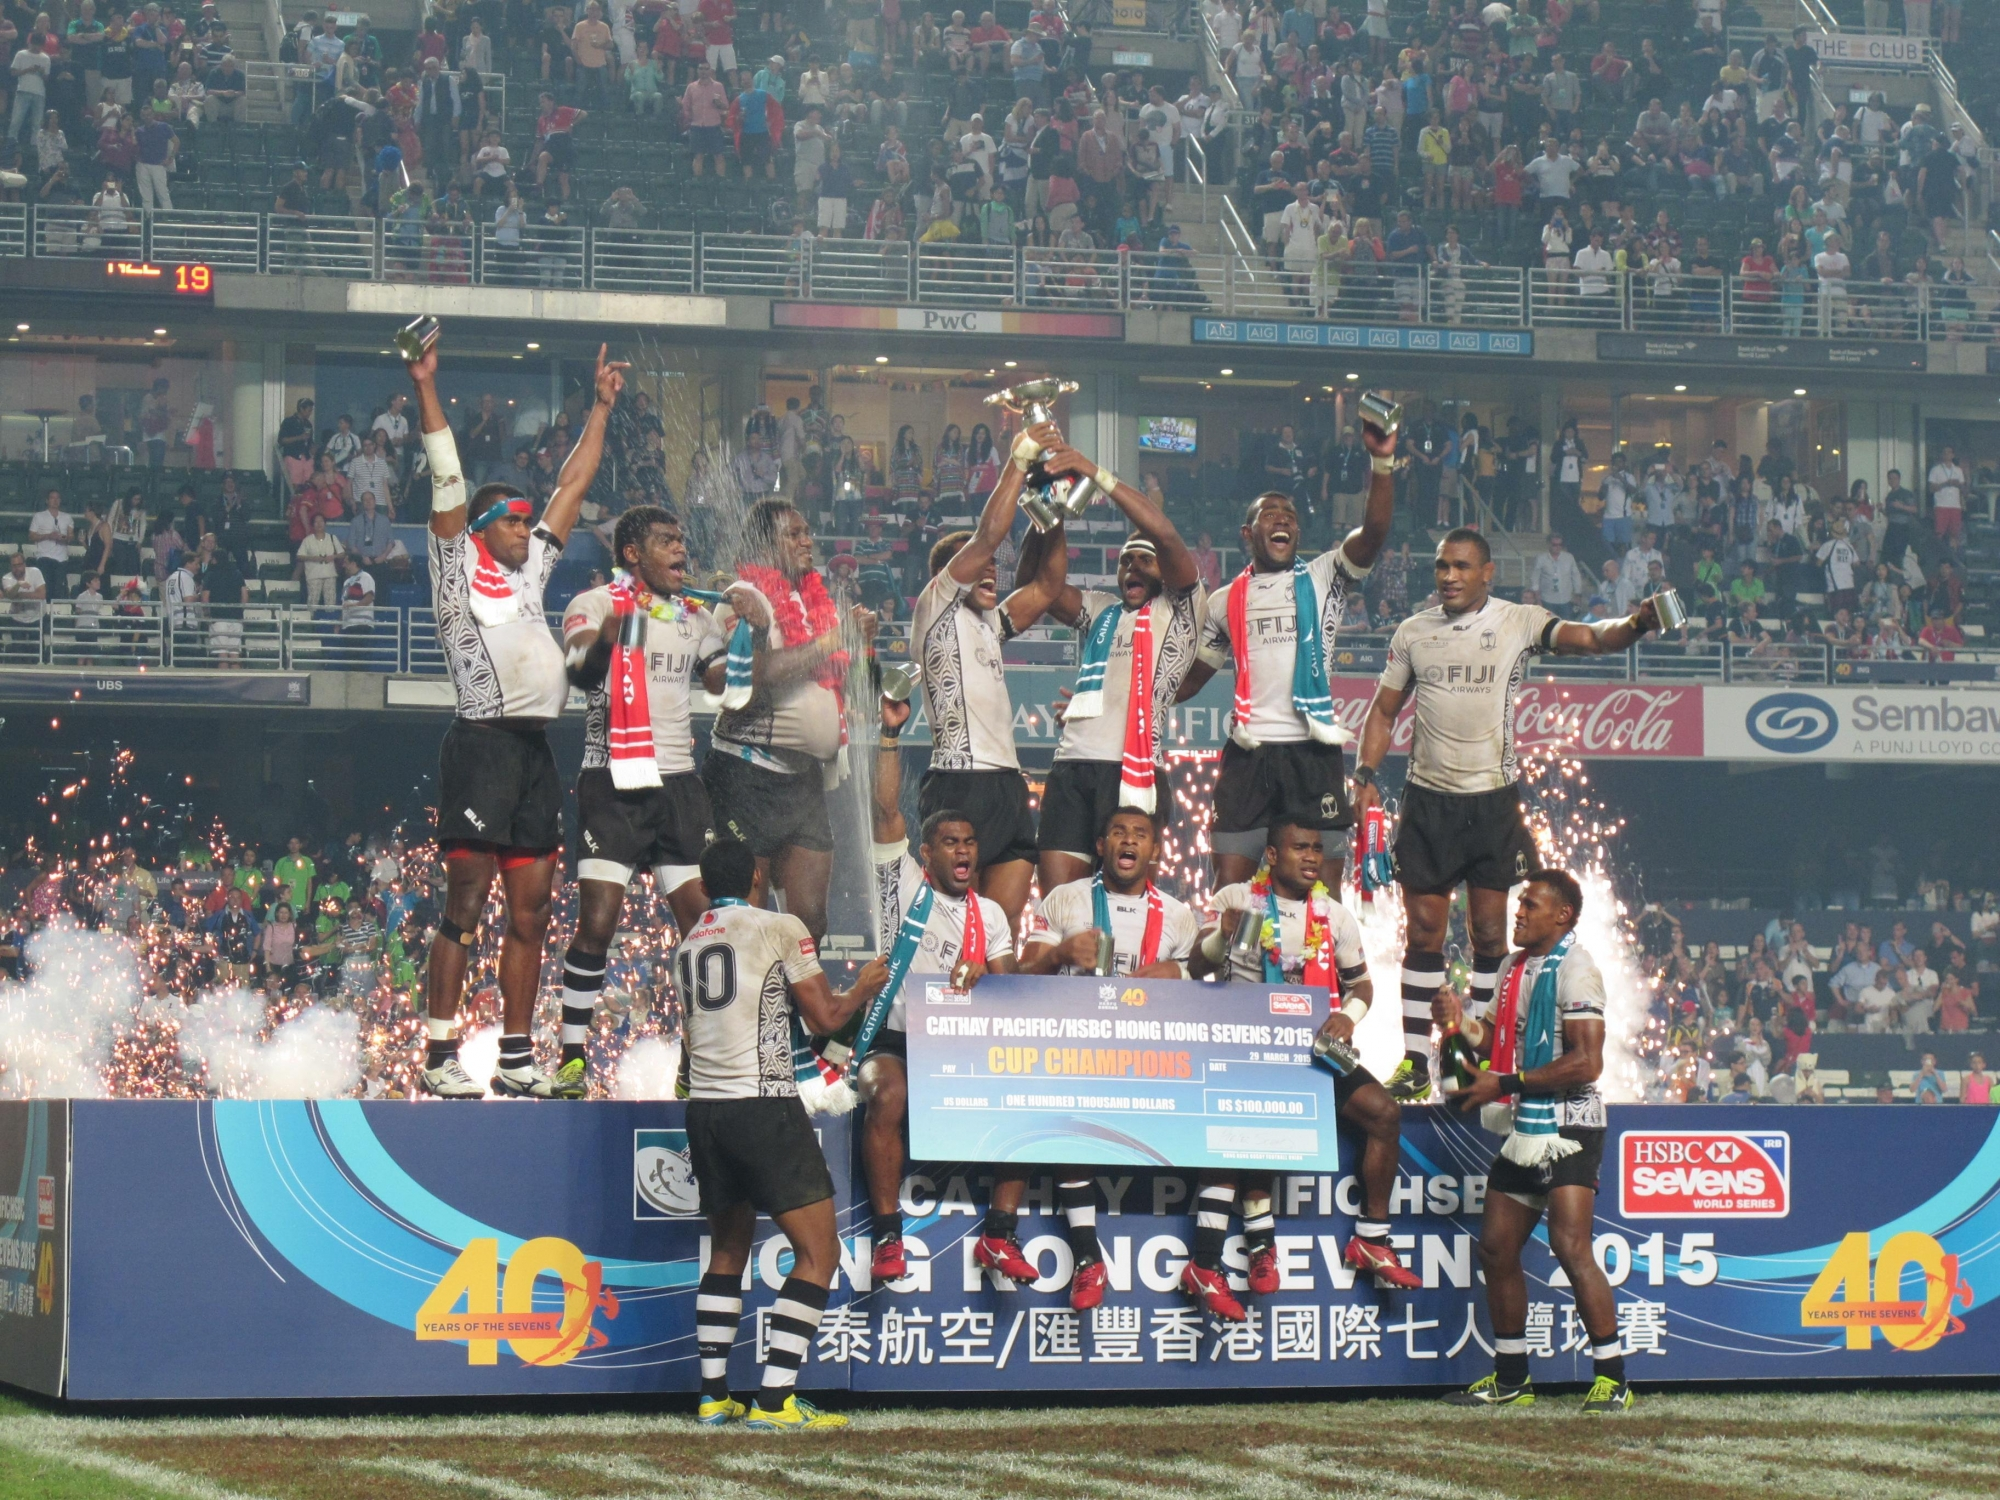 Fiji reclaim Cup champion title in 2015 Hong Kong Sevens ...